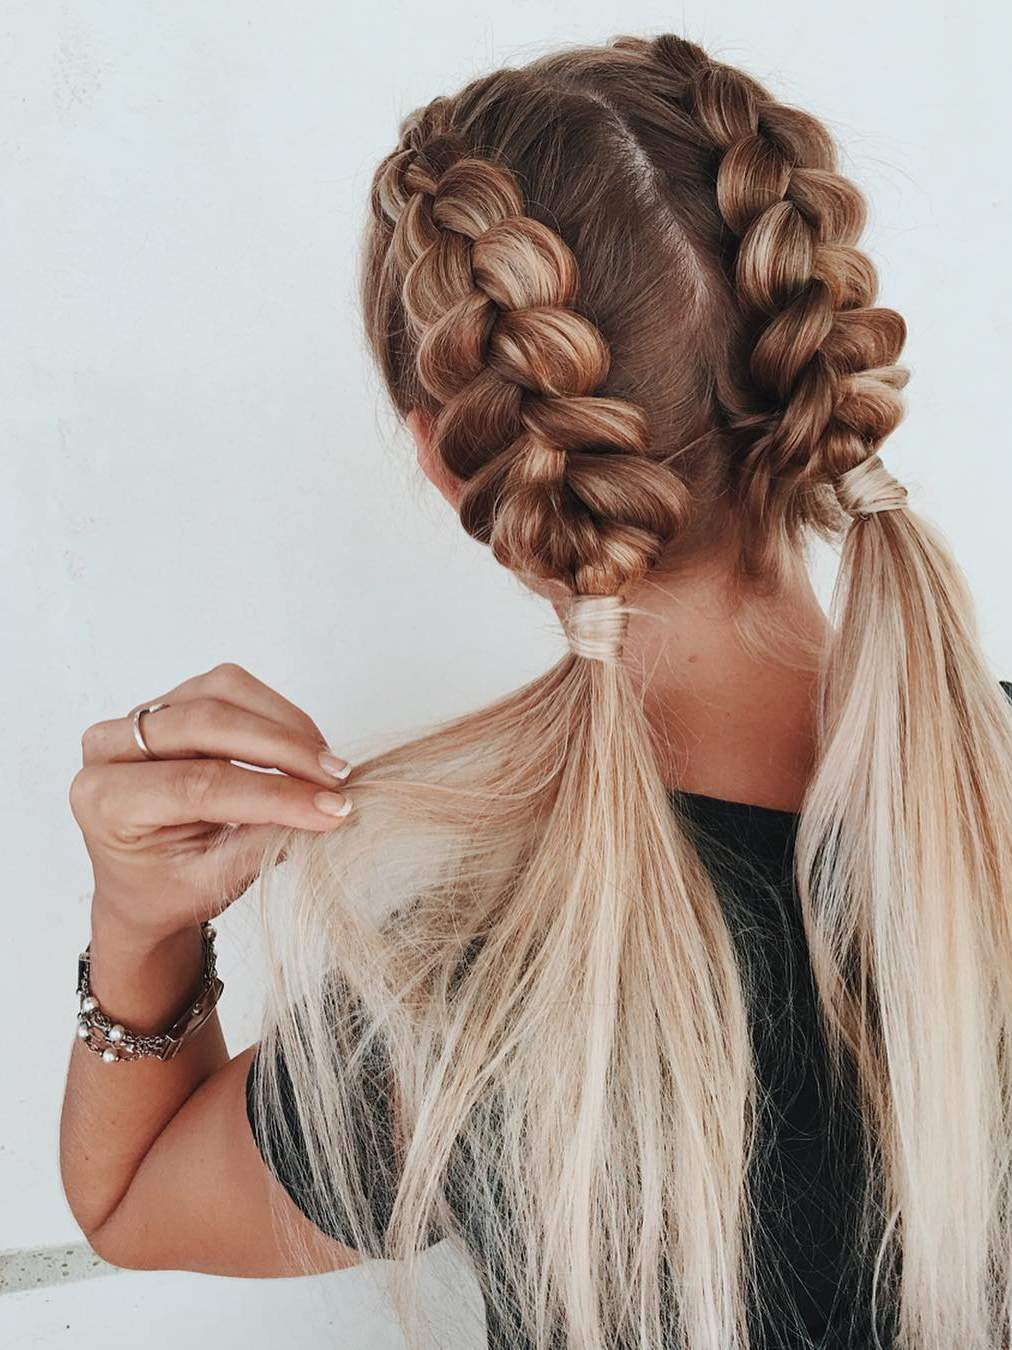 7 Braided Hairstyles That People Are Loving on Pinterest 130db87f9ebc1ff373d85f4e38a08ab3